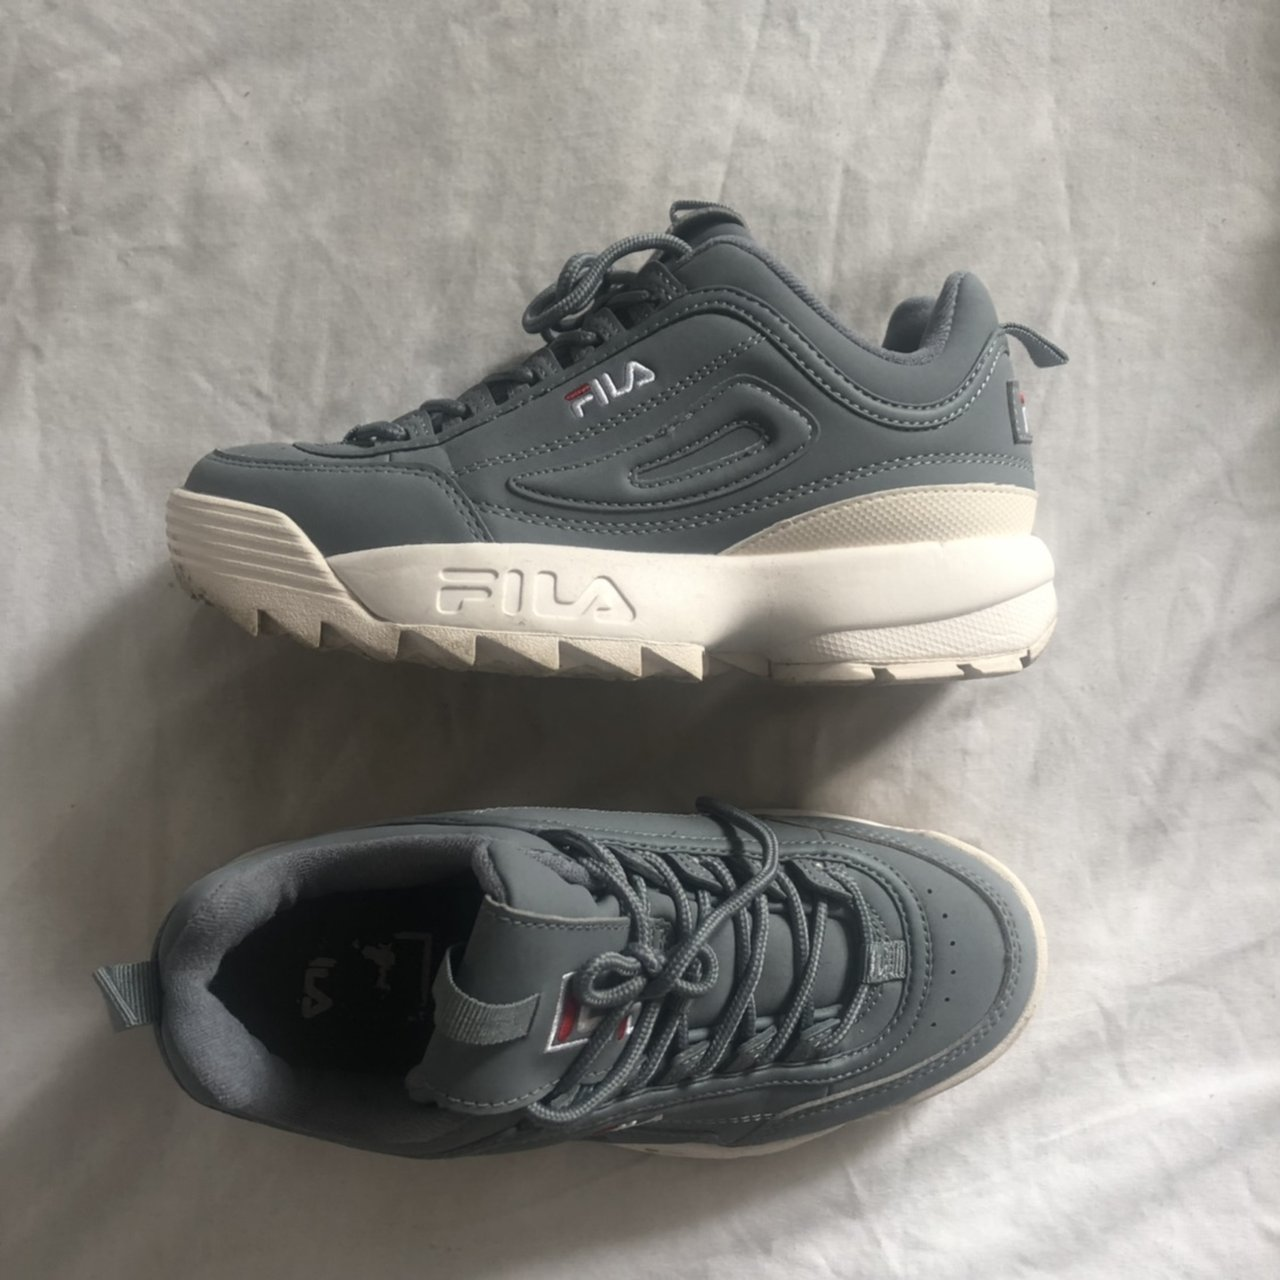 FILA DISRUPTOR size 3.5, used but will